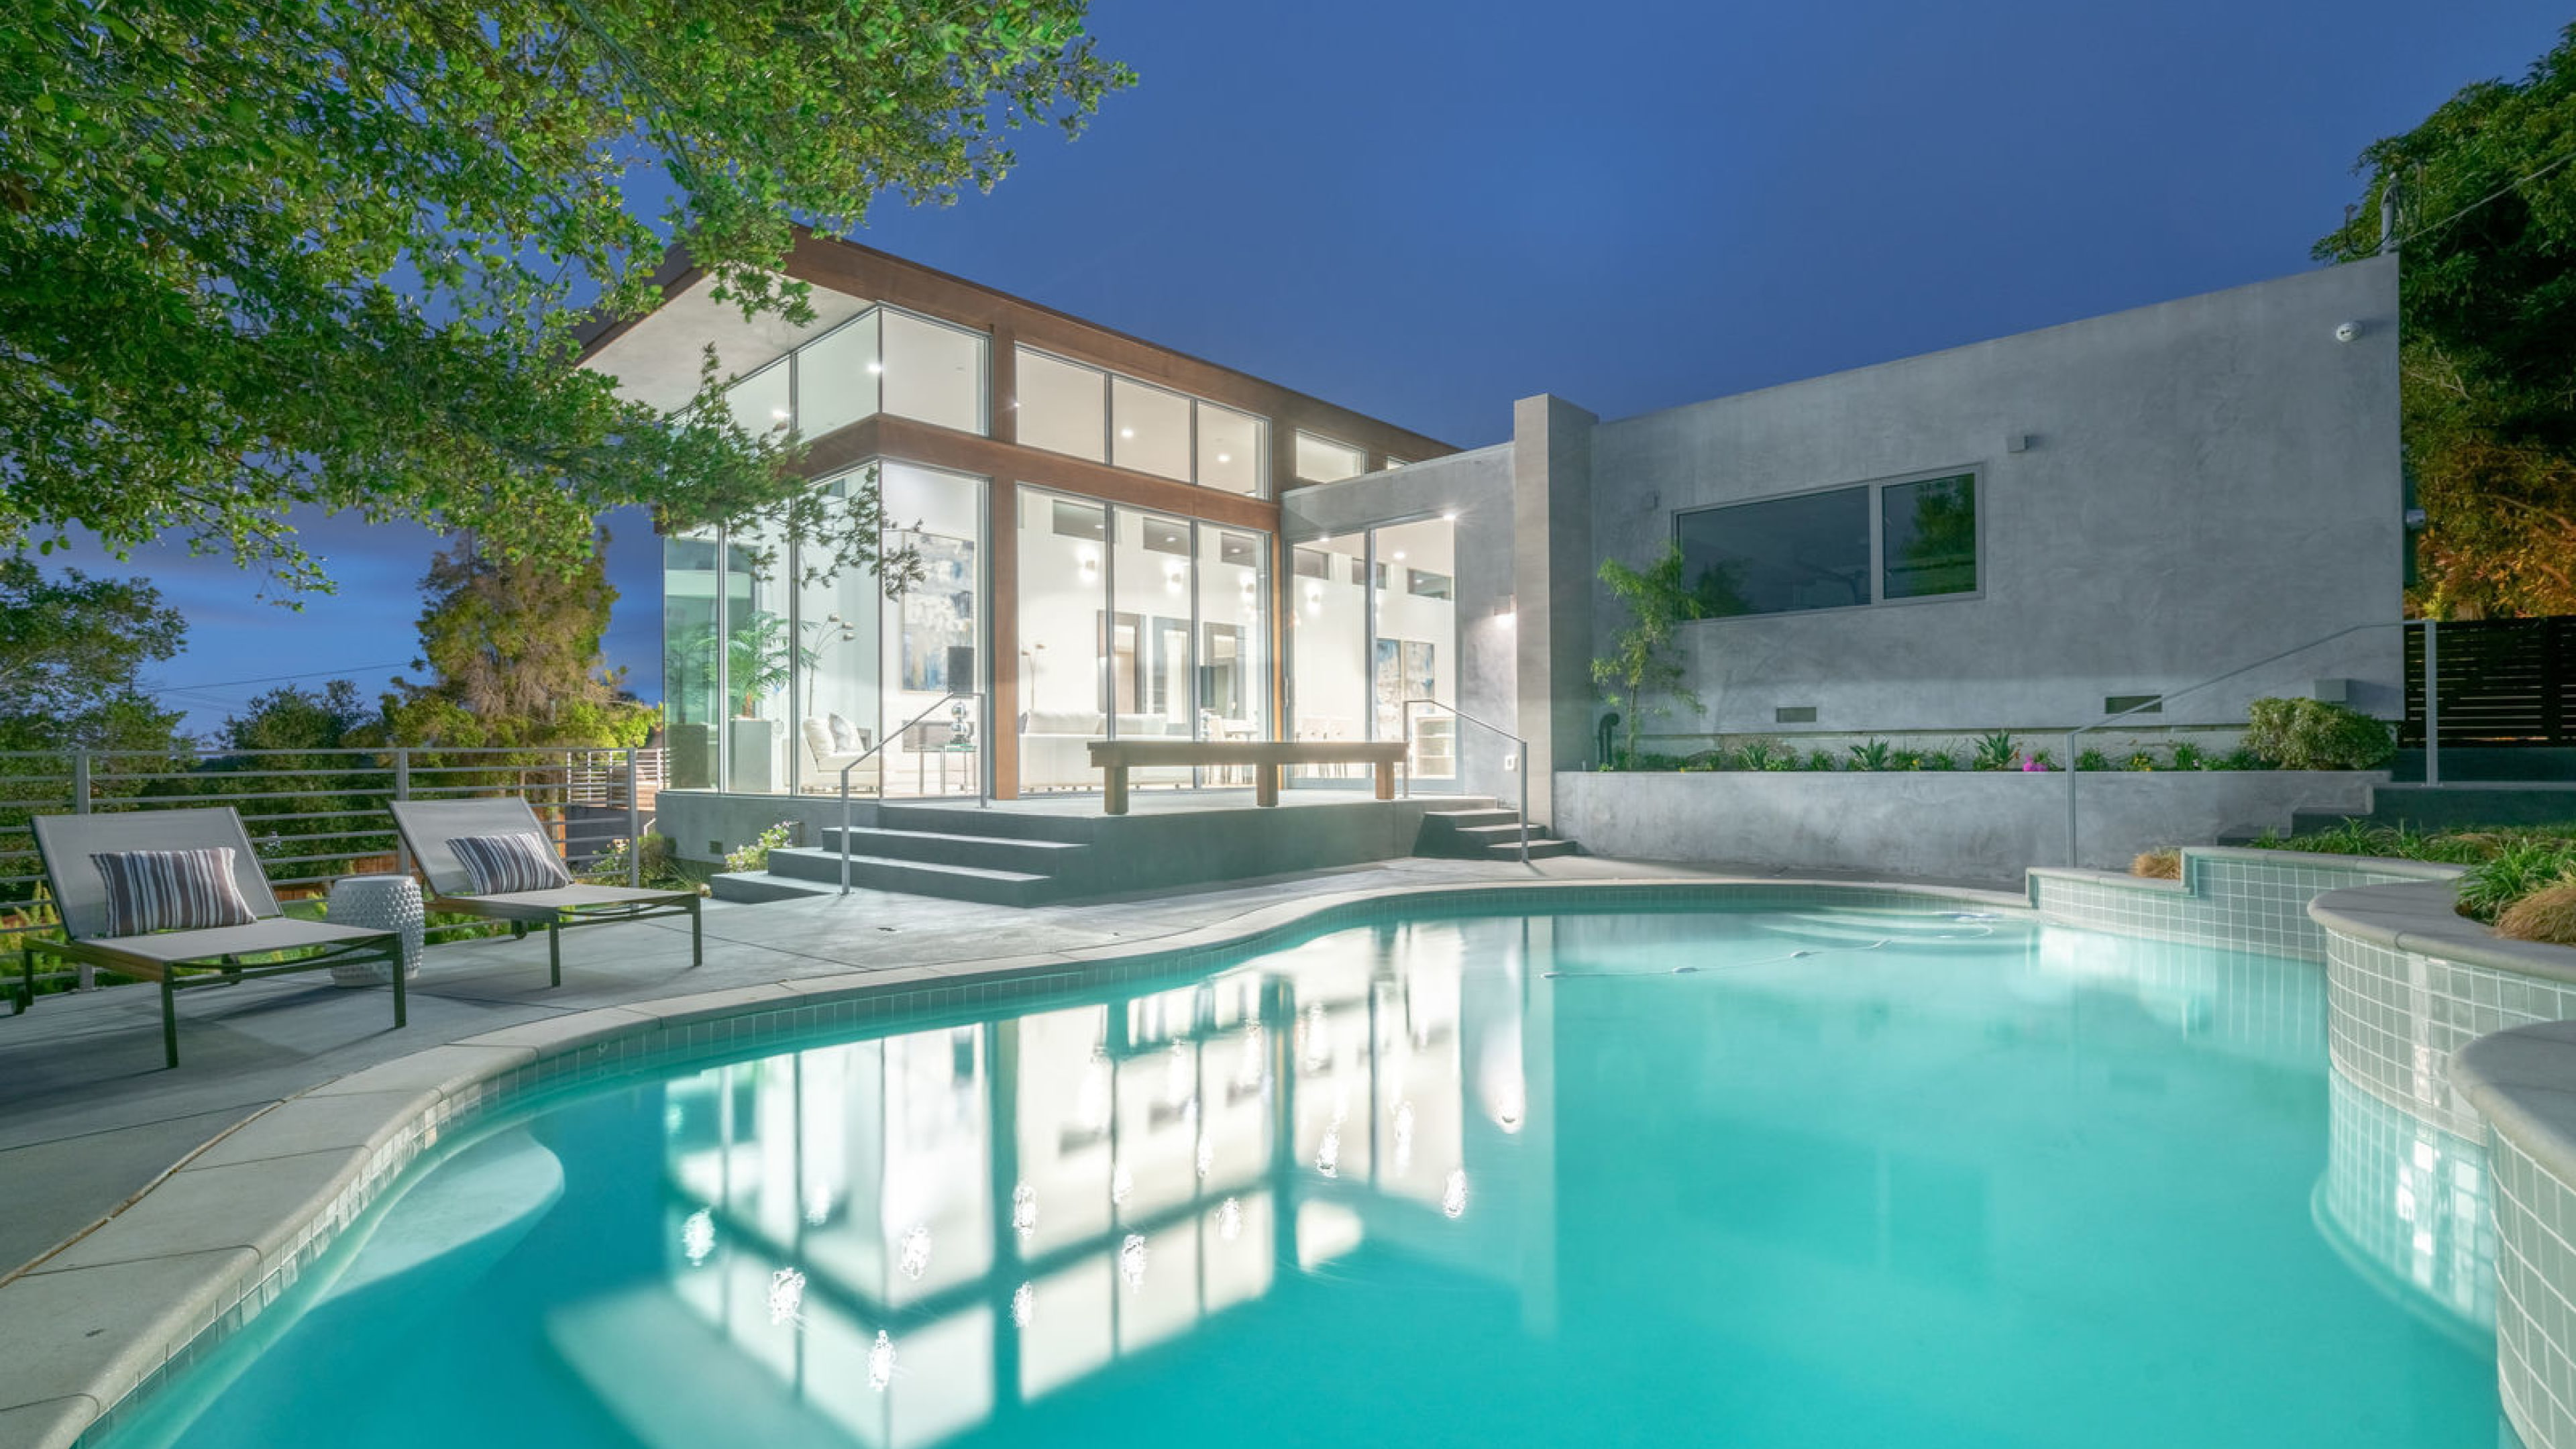 window walled home with swimming pool at dusk